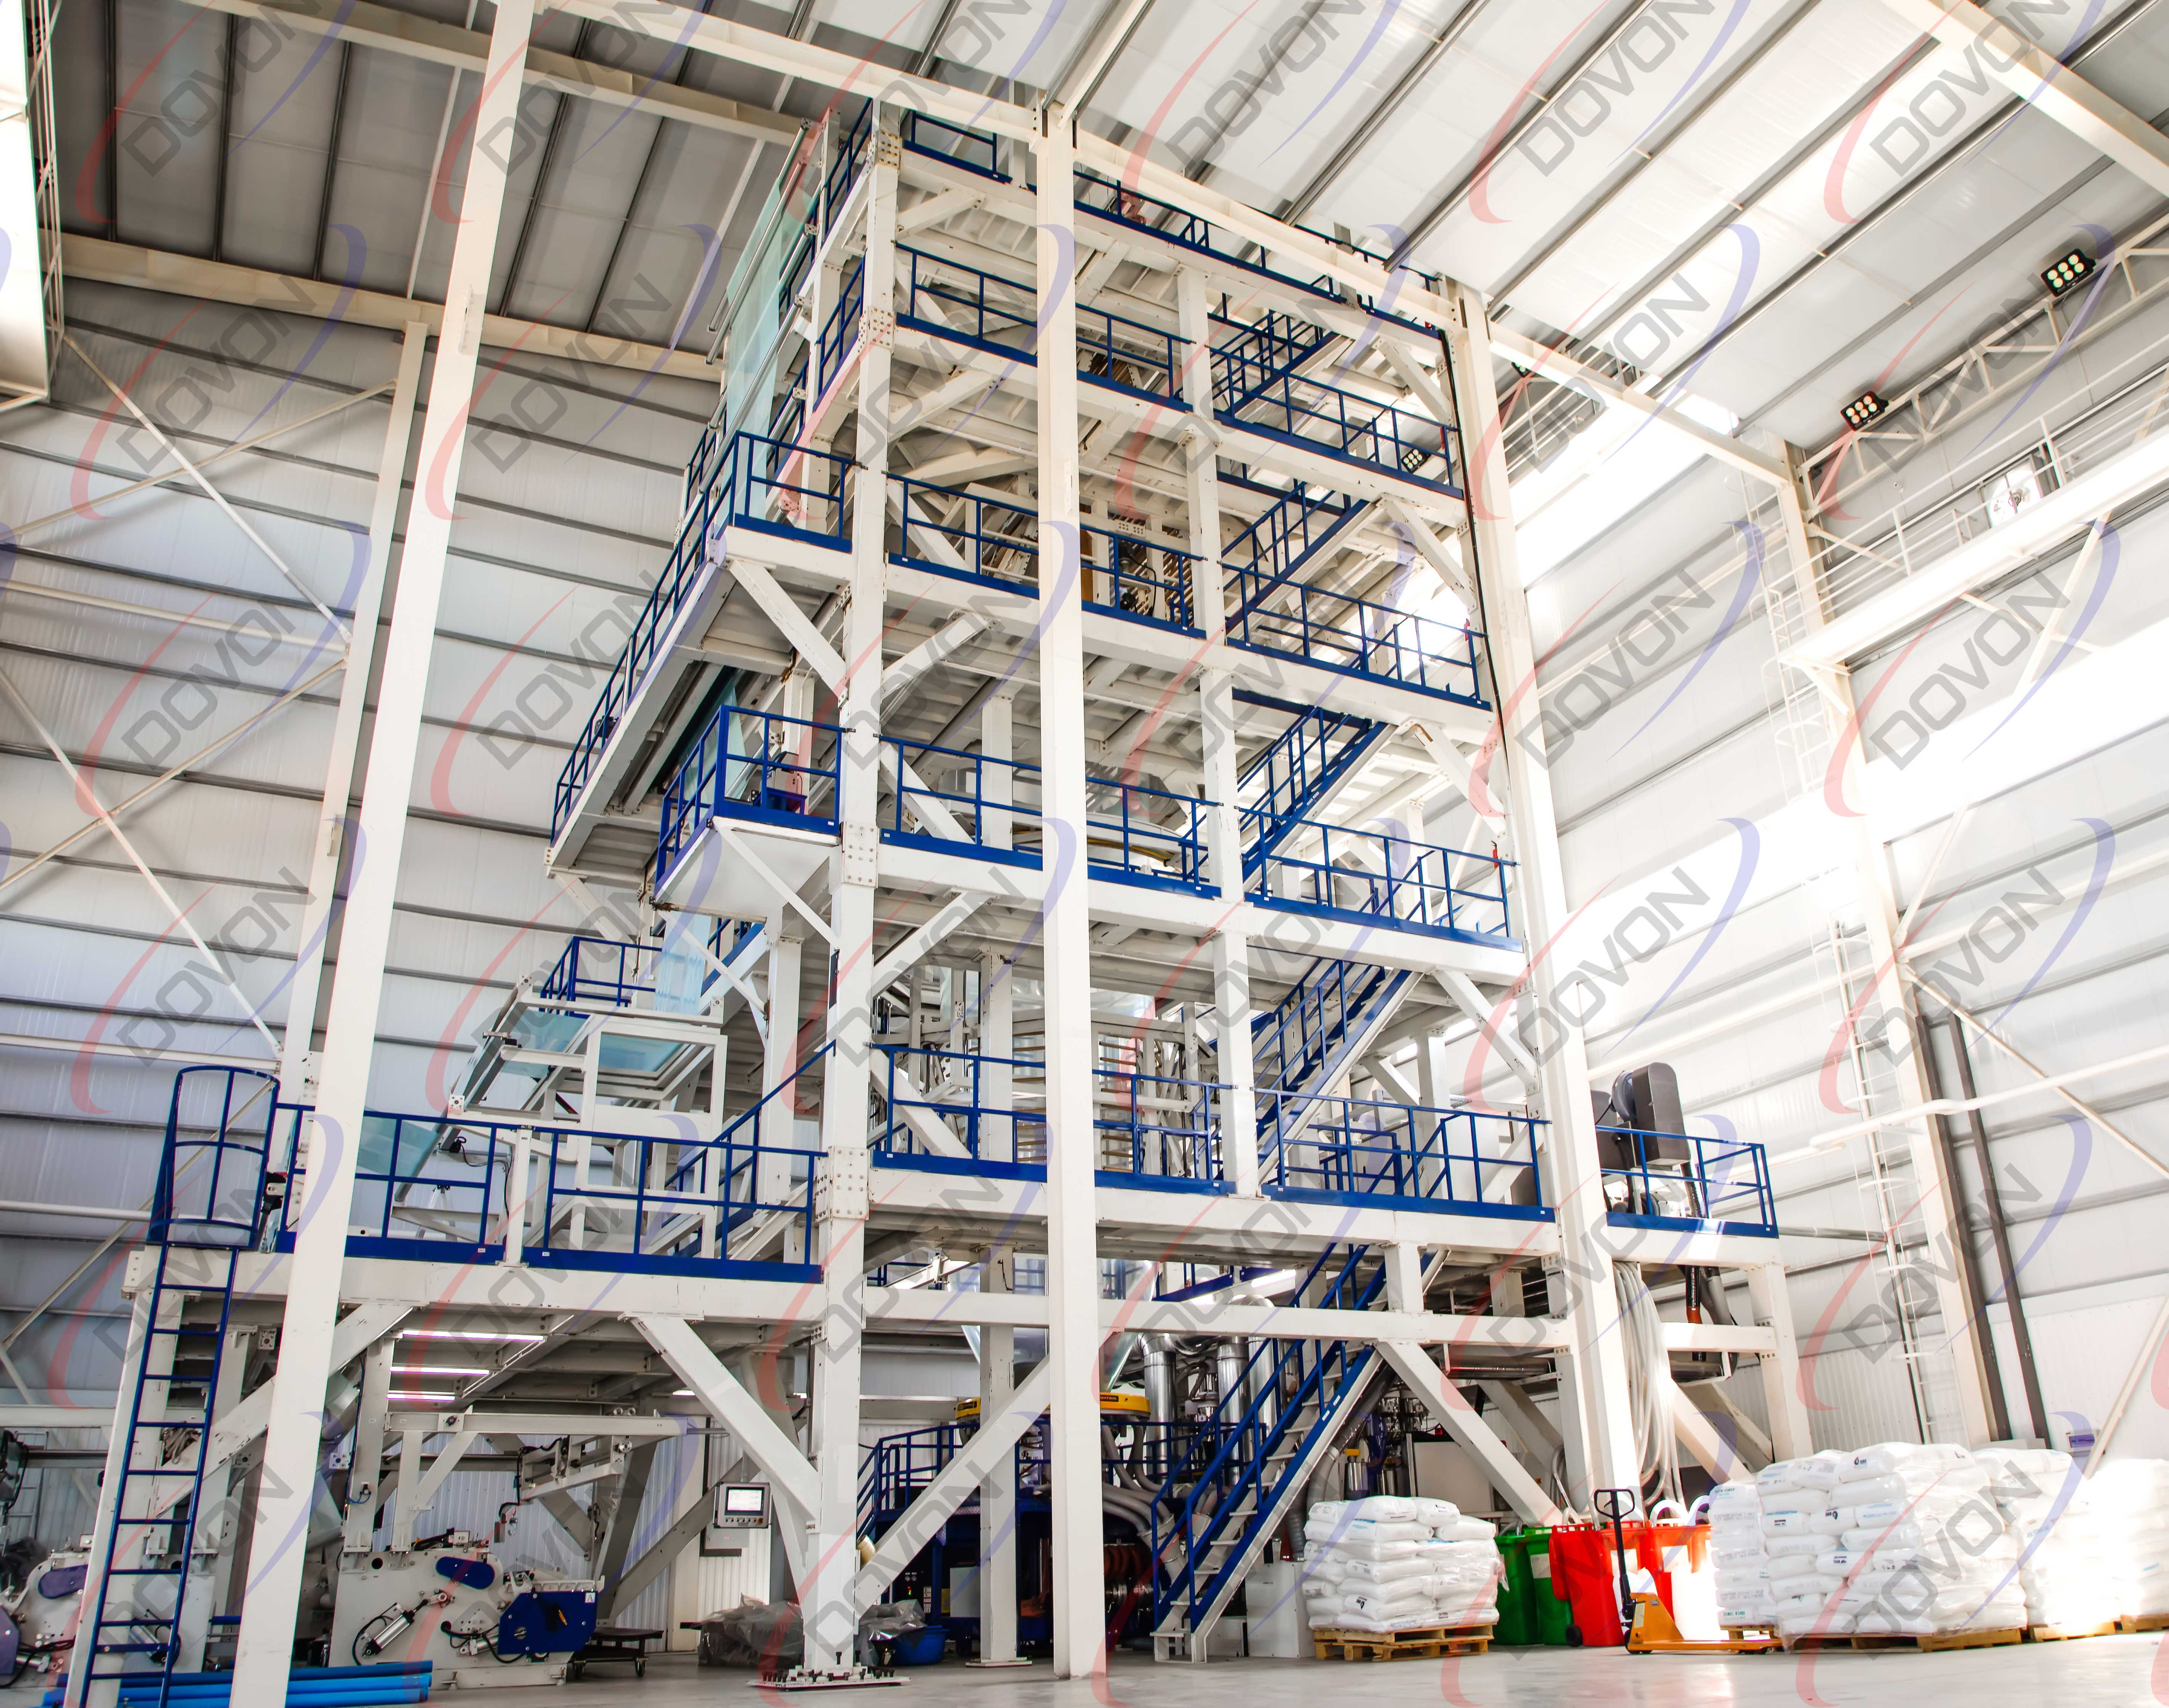 DOVON LLC has launched a new production line for manufacturing greenhouse films, with width of up to 8 meters.